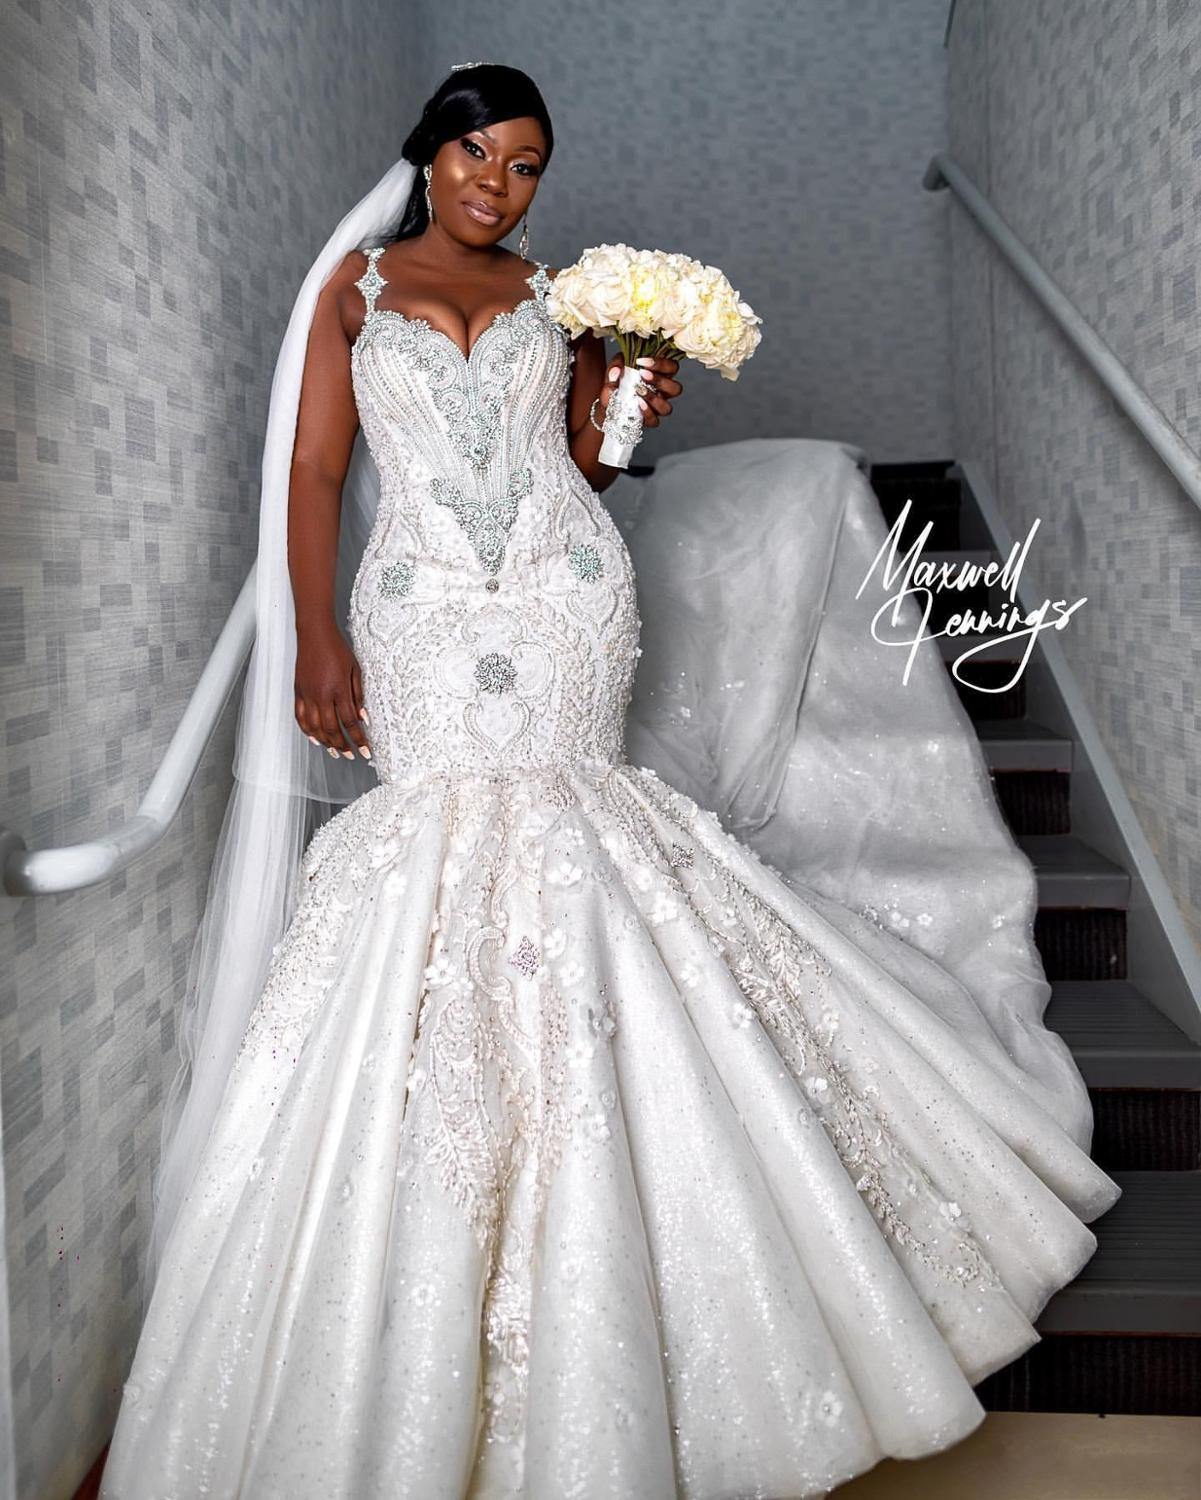 2020 Luxury Spaghetti Crystal Beaded Mermaid Wedding Dresses Sexy African Plus Size Open Back Lace Appliqued Bridal Gown